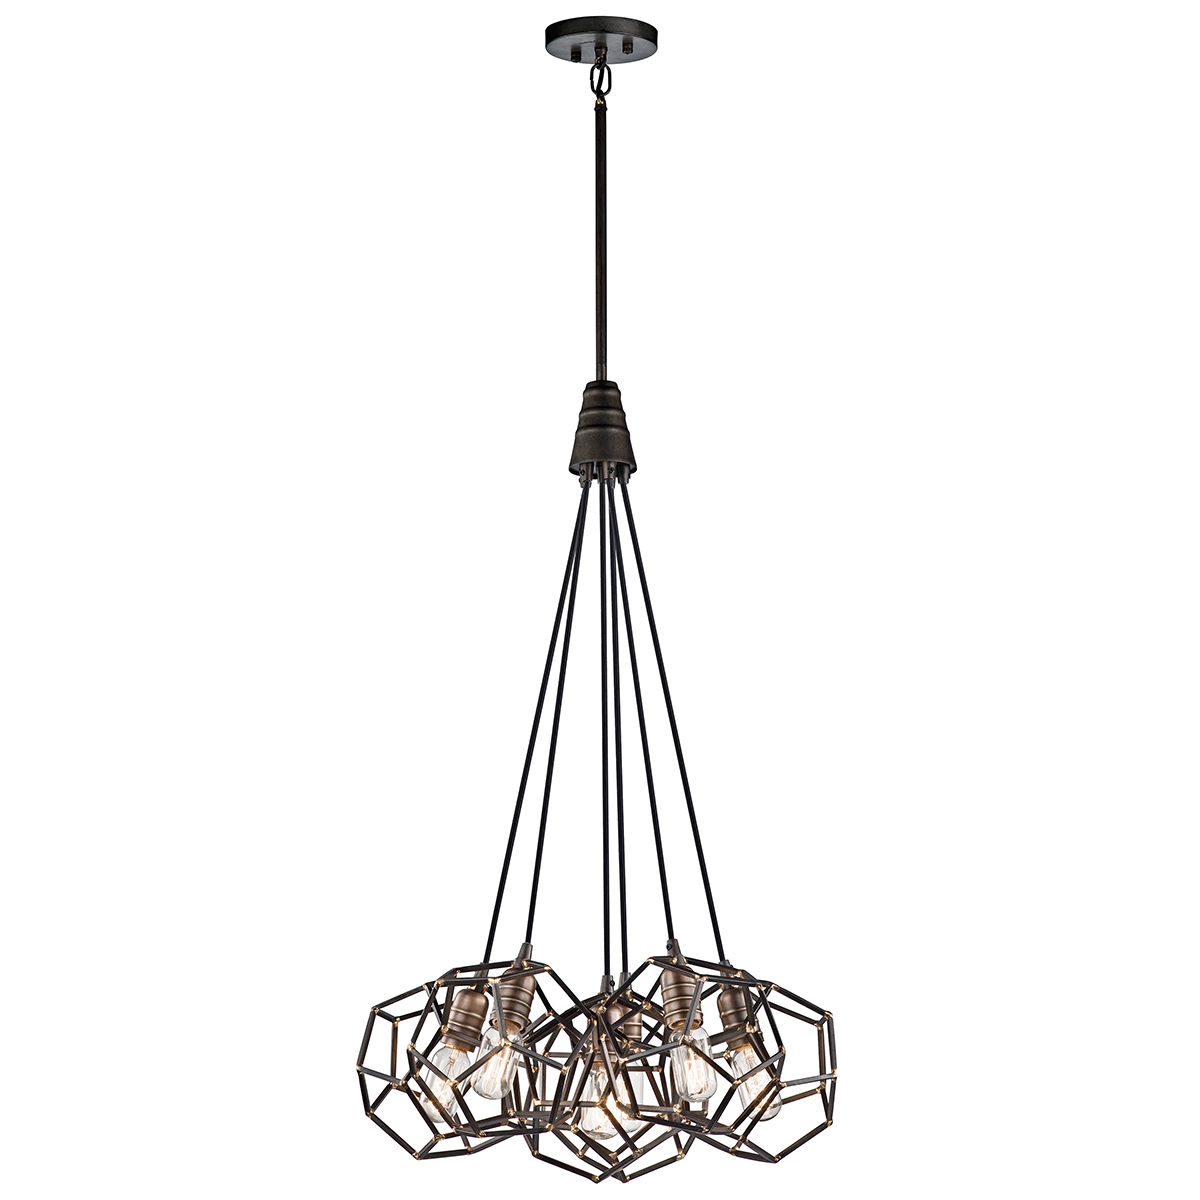 Primary image for Kichler 43718RS Rocklyn Pendants 23in Raw Steel STEEL 6-light